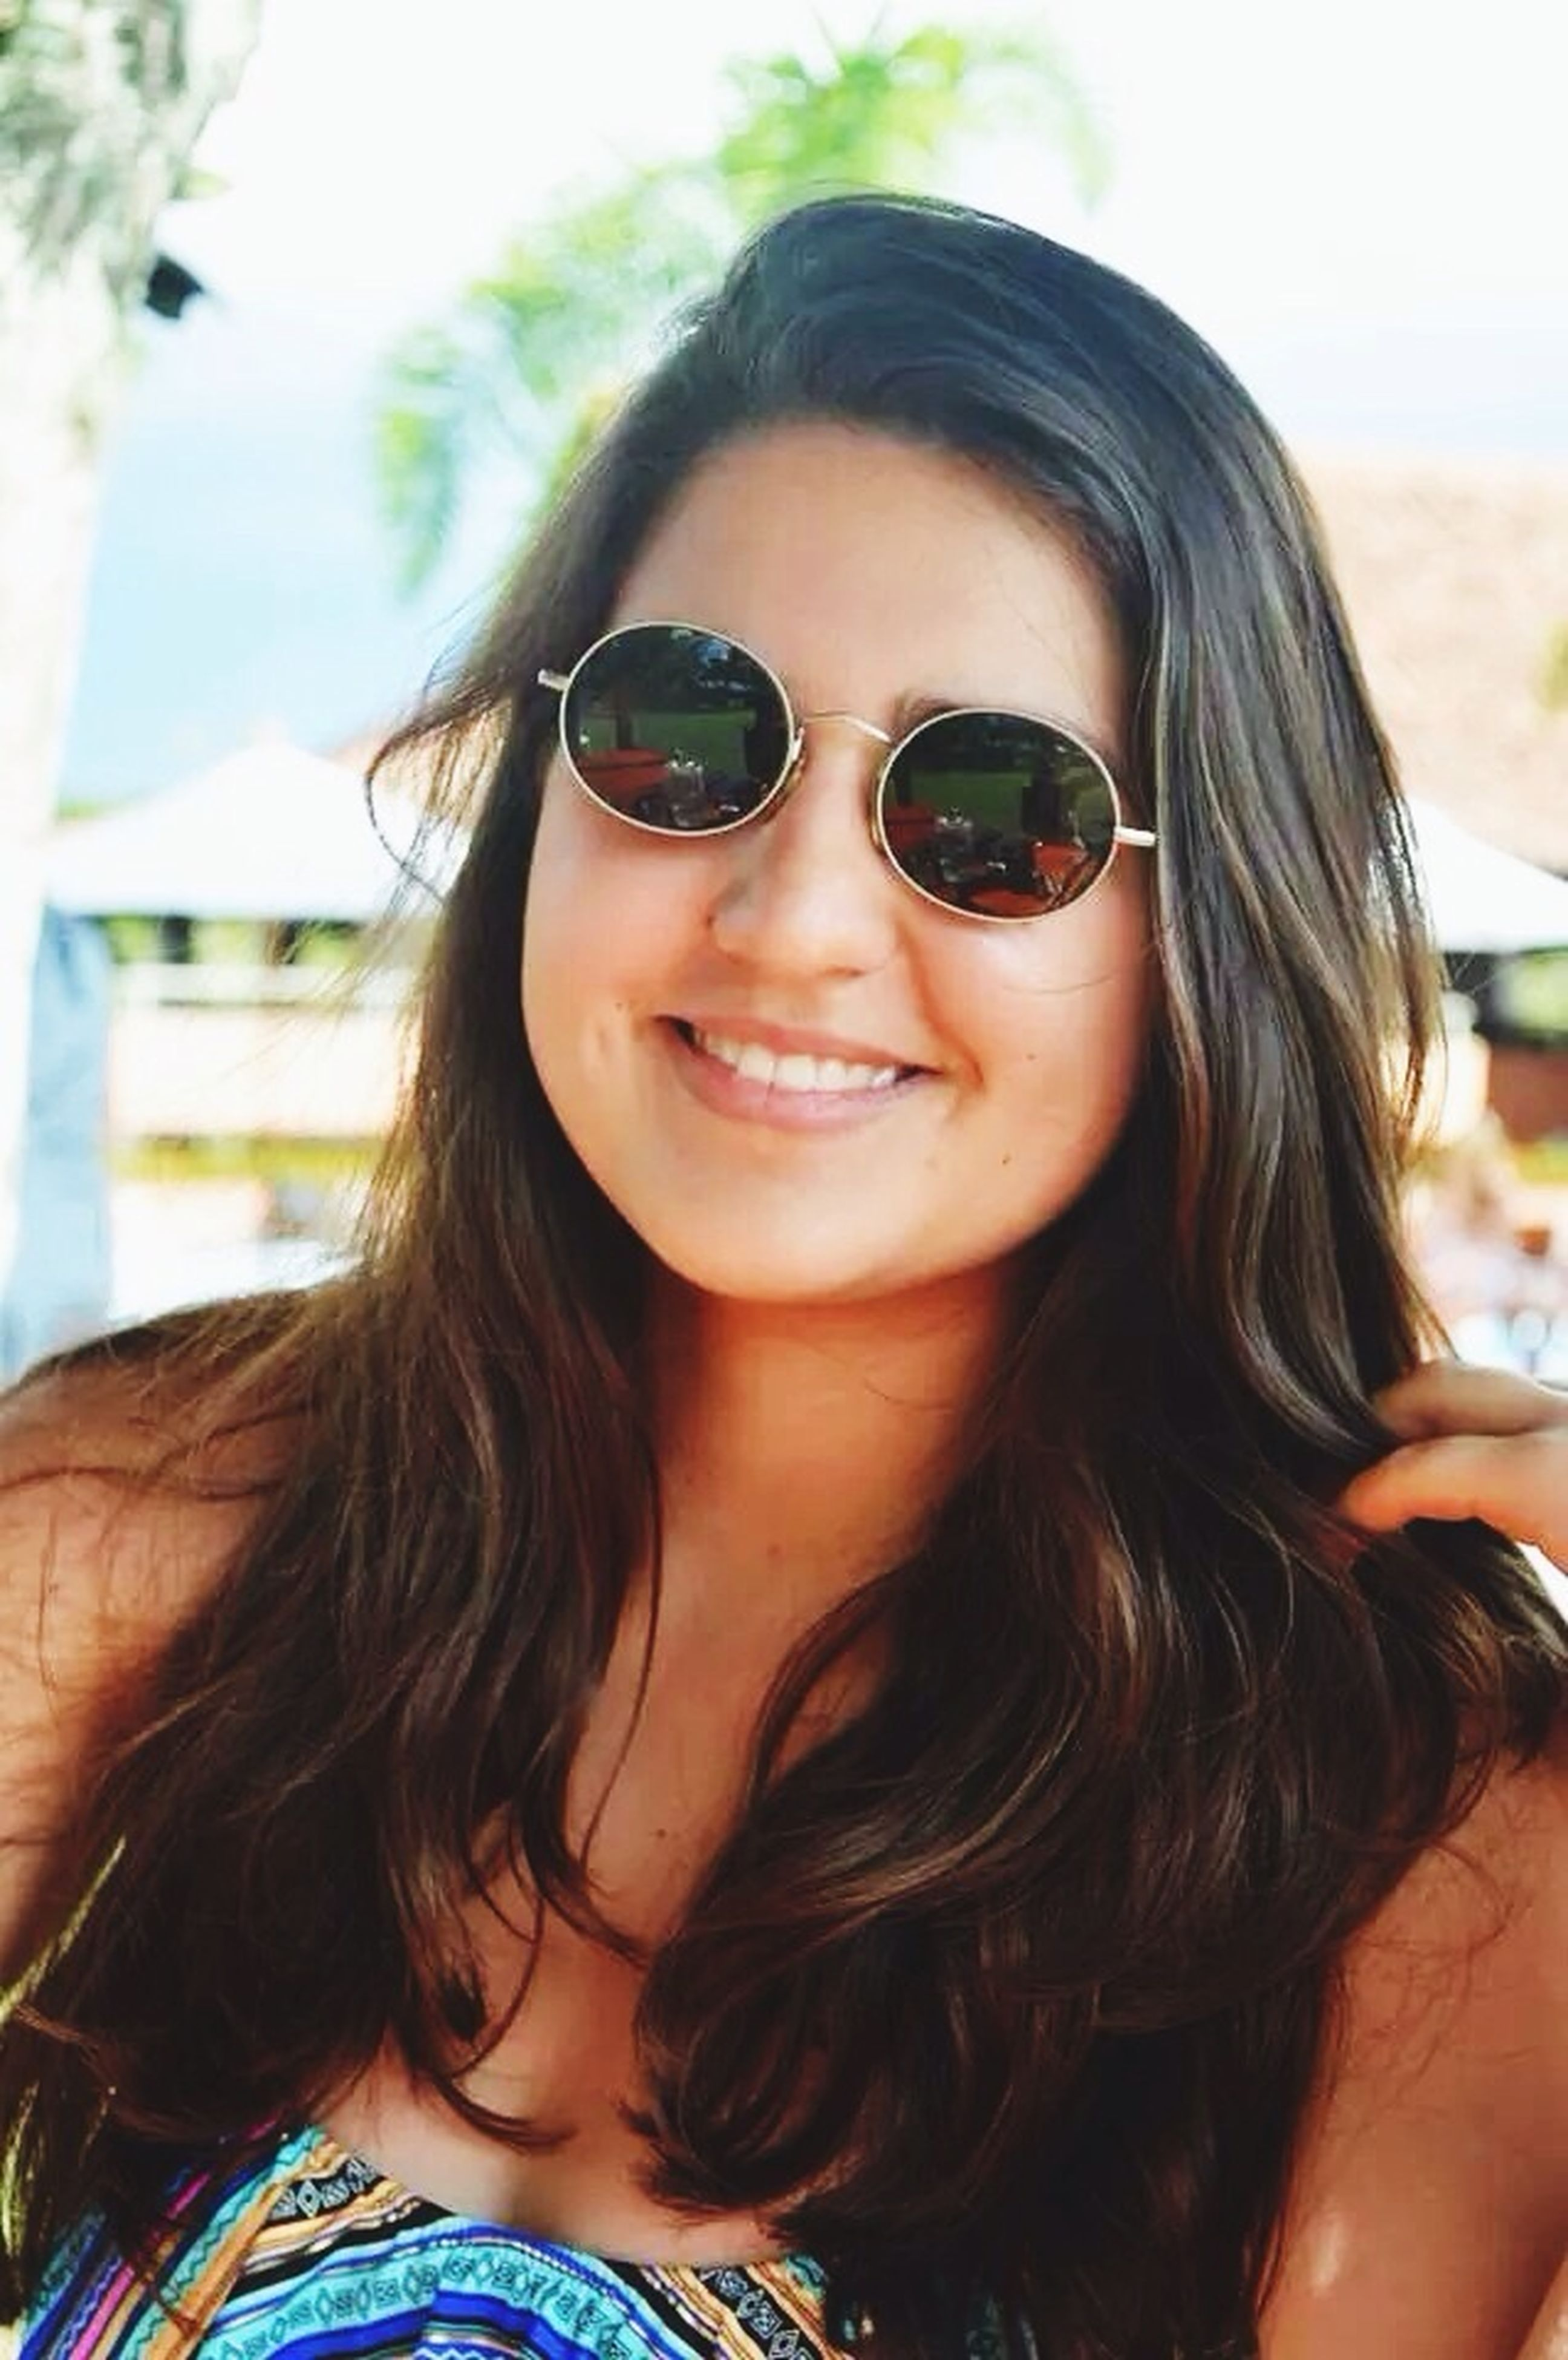 young women, young adult, long hair, portrait, person, looking at camera, headshot, lifestyles, leisure activity, smiling, sunglasses, focus on foreground, front view, head and shoulders, brown hair, close-up, happiness